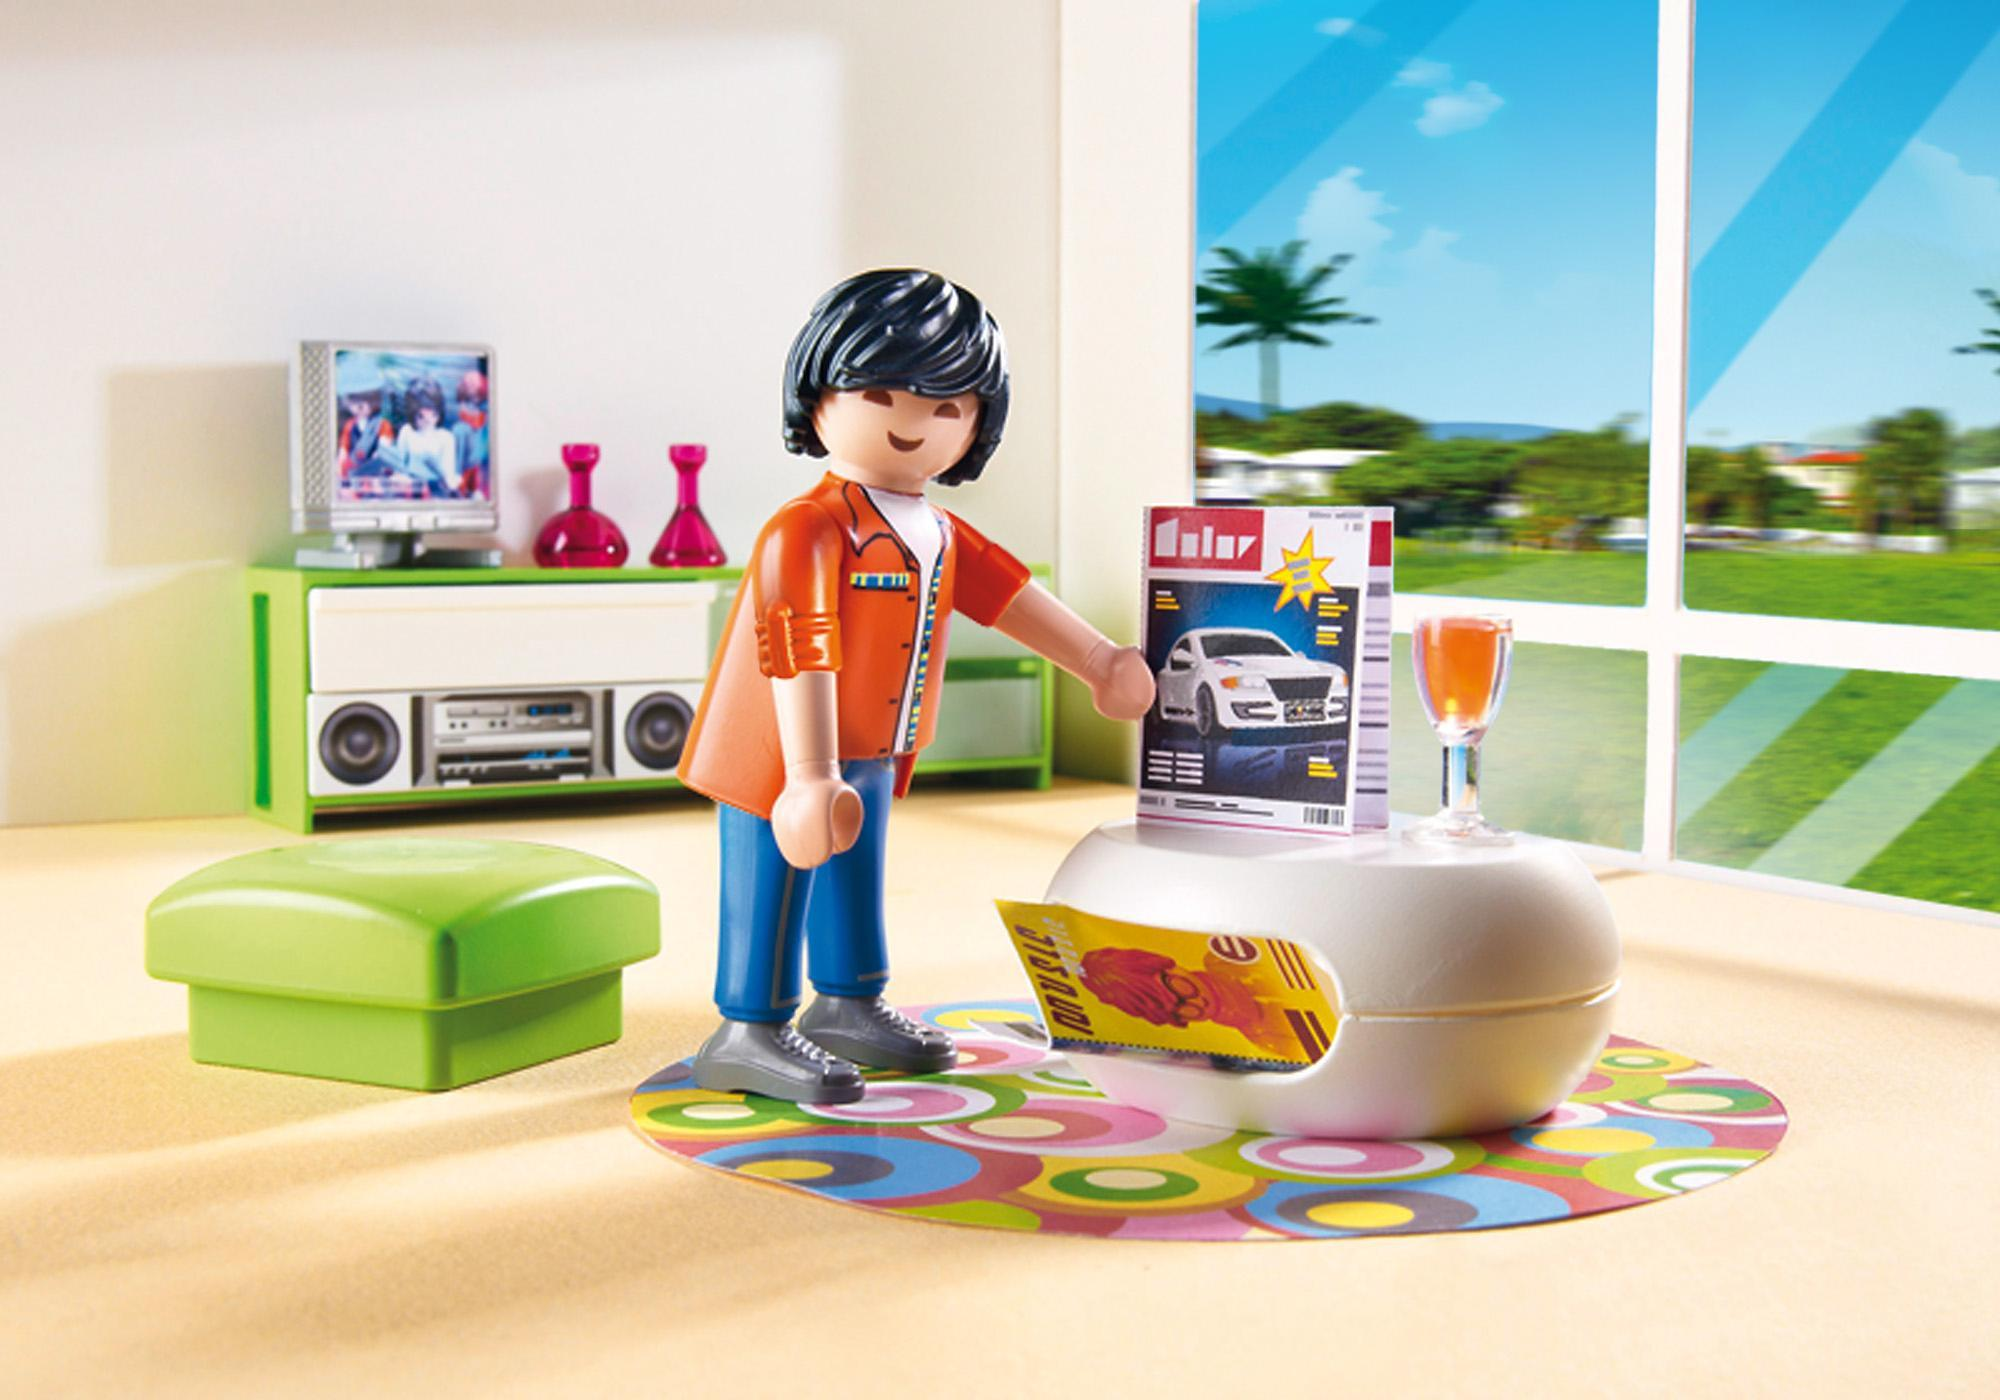 http://media.playmobil.com/i/playmobil/5584_product_extra1/Wohnzimmer